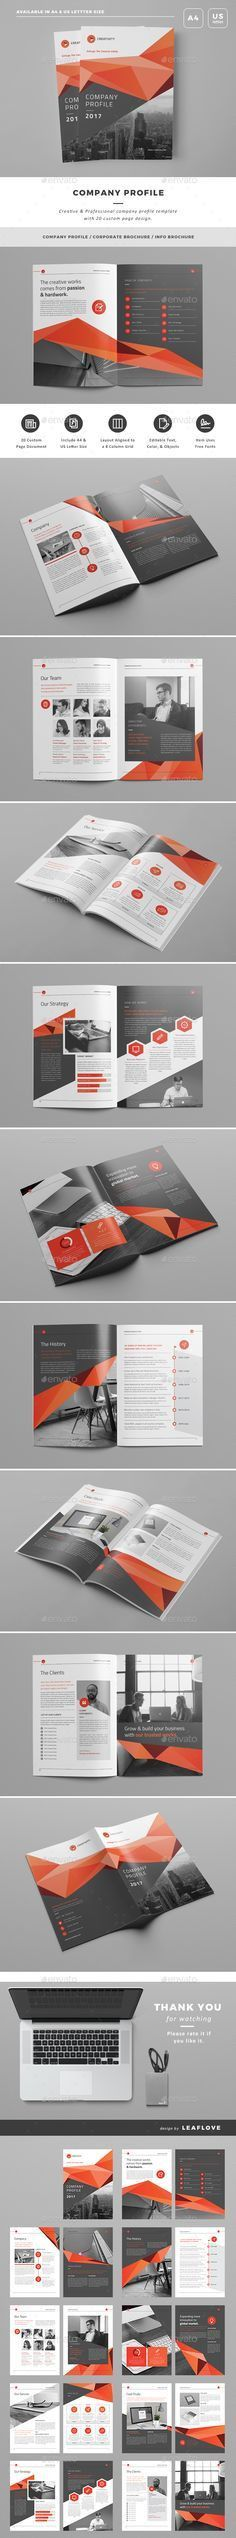 Company Profile Template InDesign INDD | Company Profile Design ...